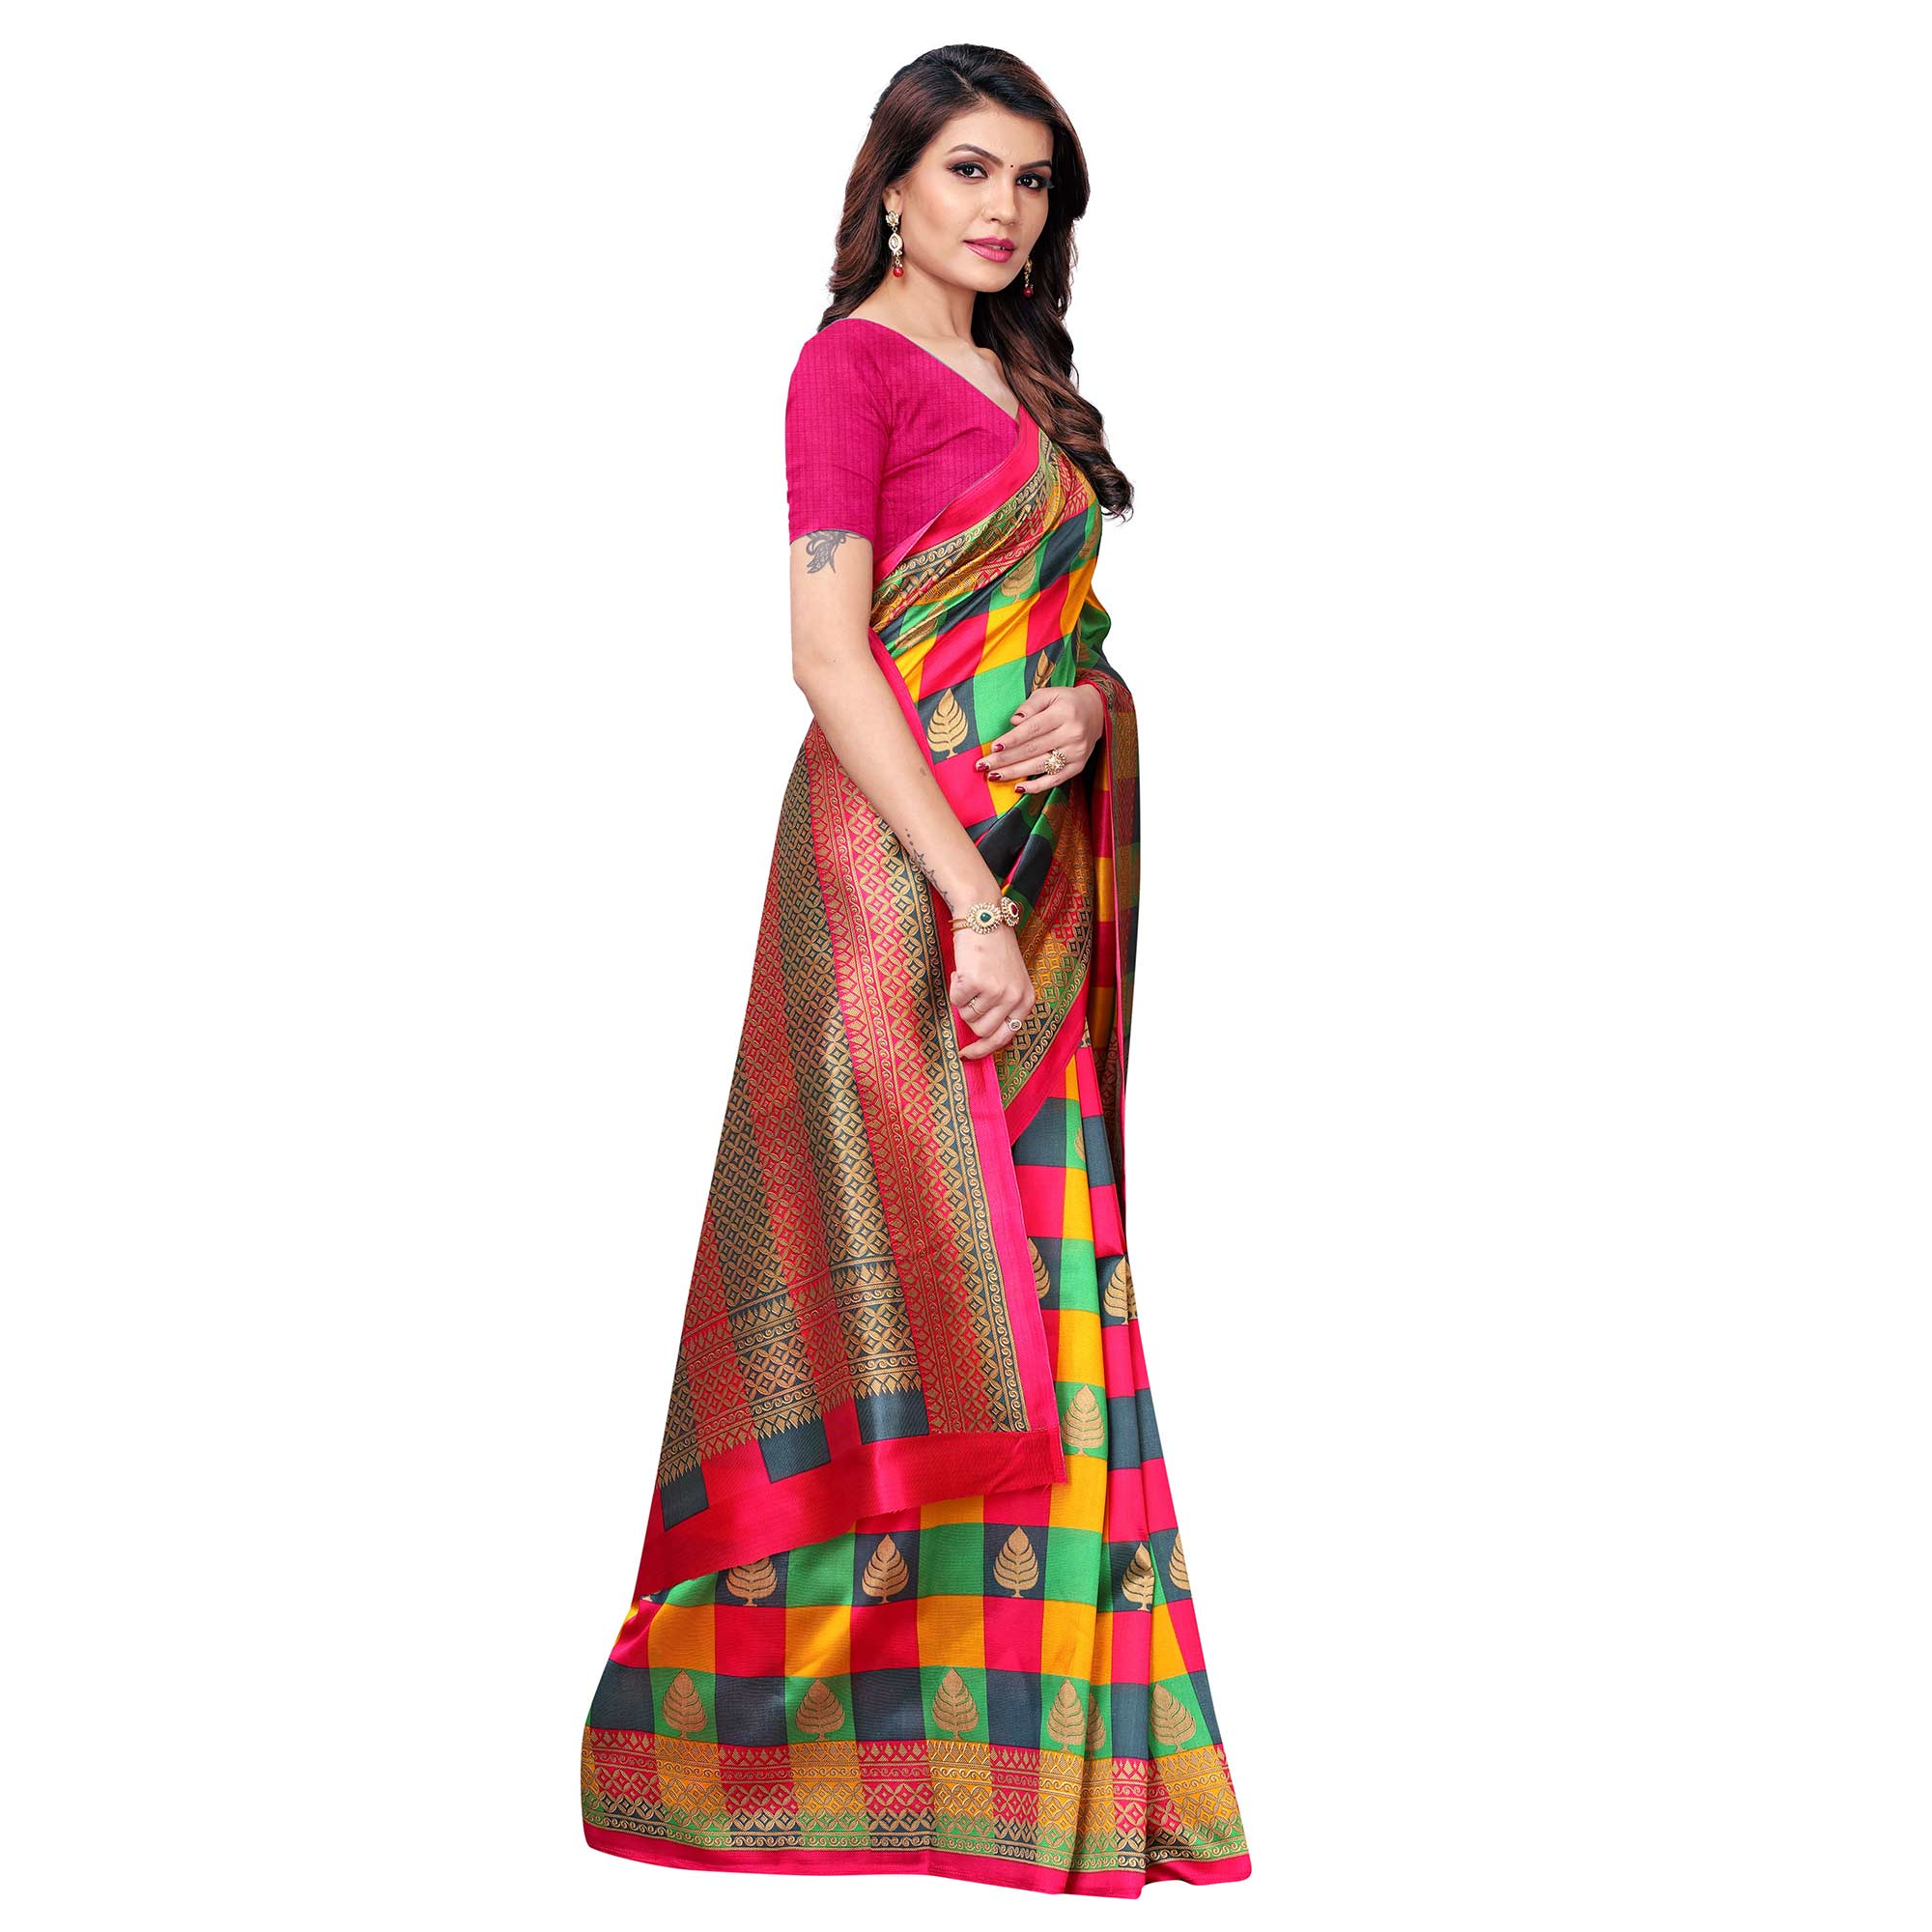 Sensational Pink - Multi Colored Casual Wear Printed Art Silk Saree